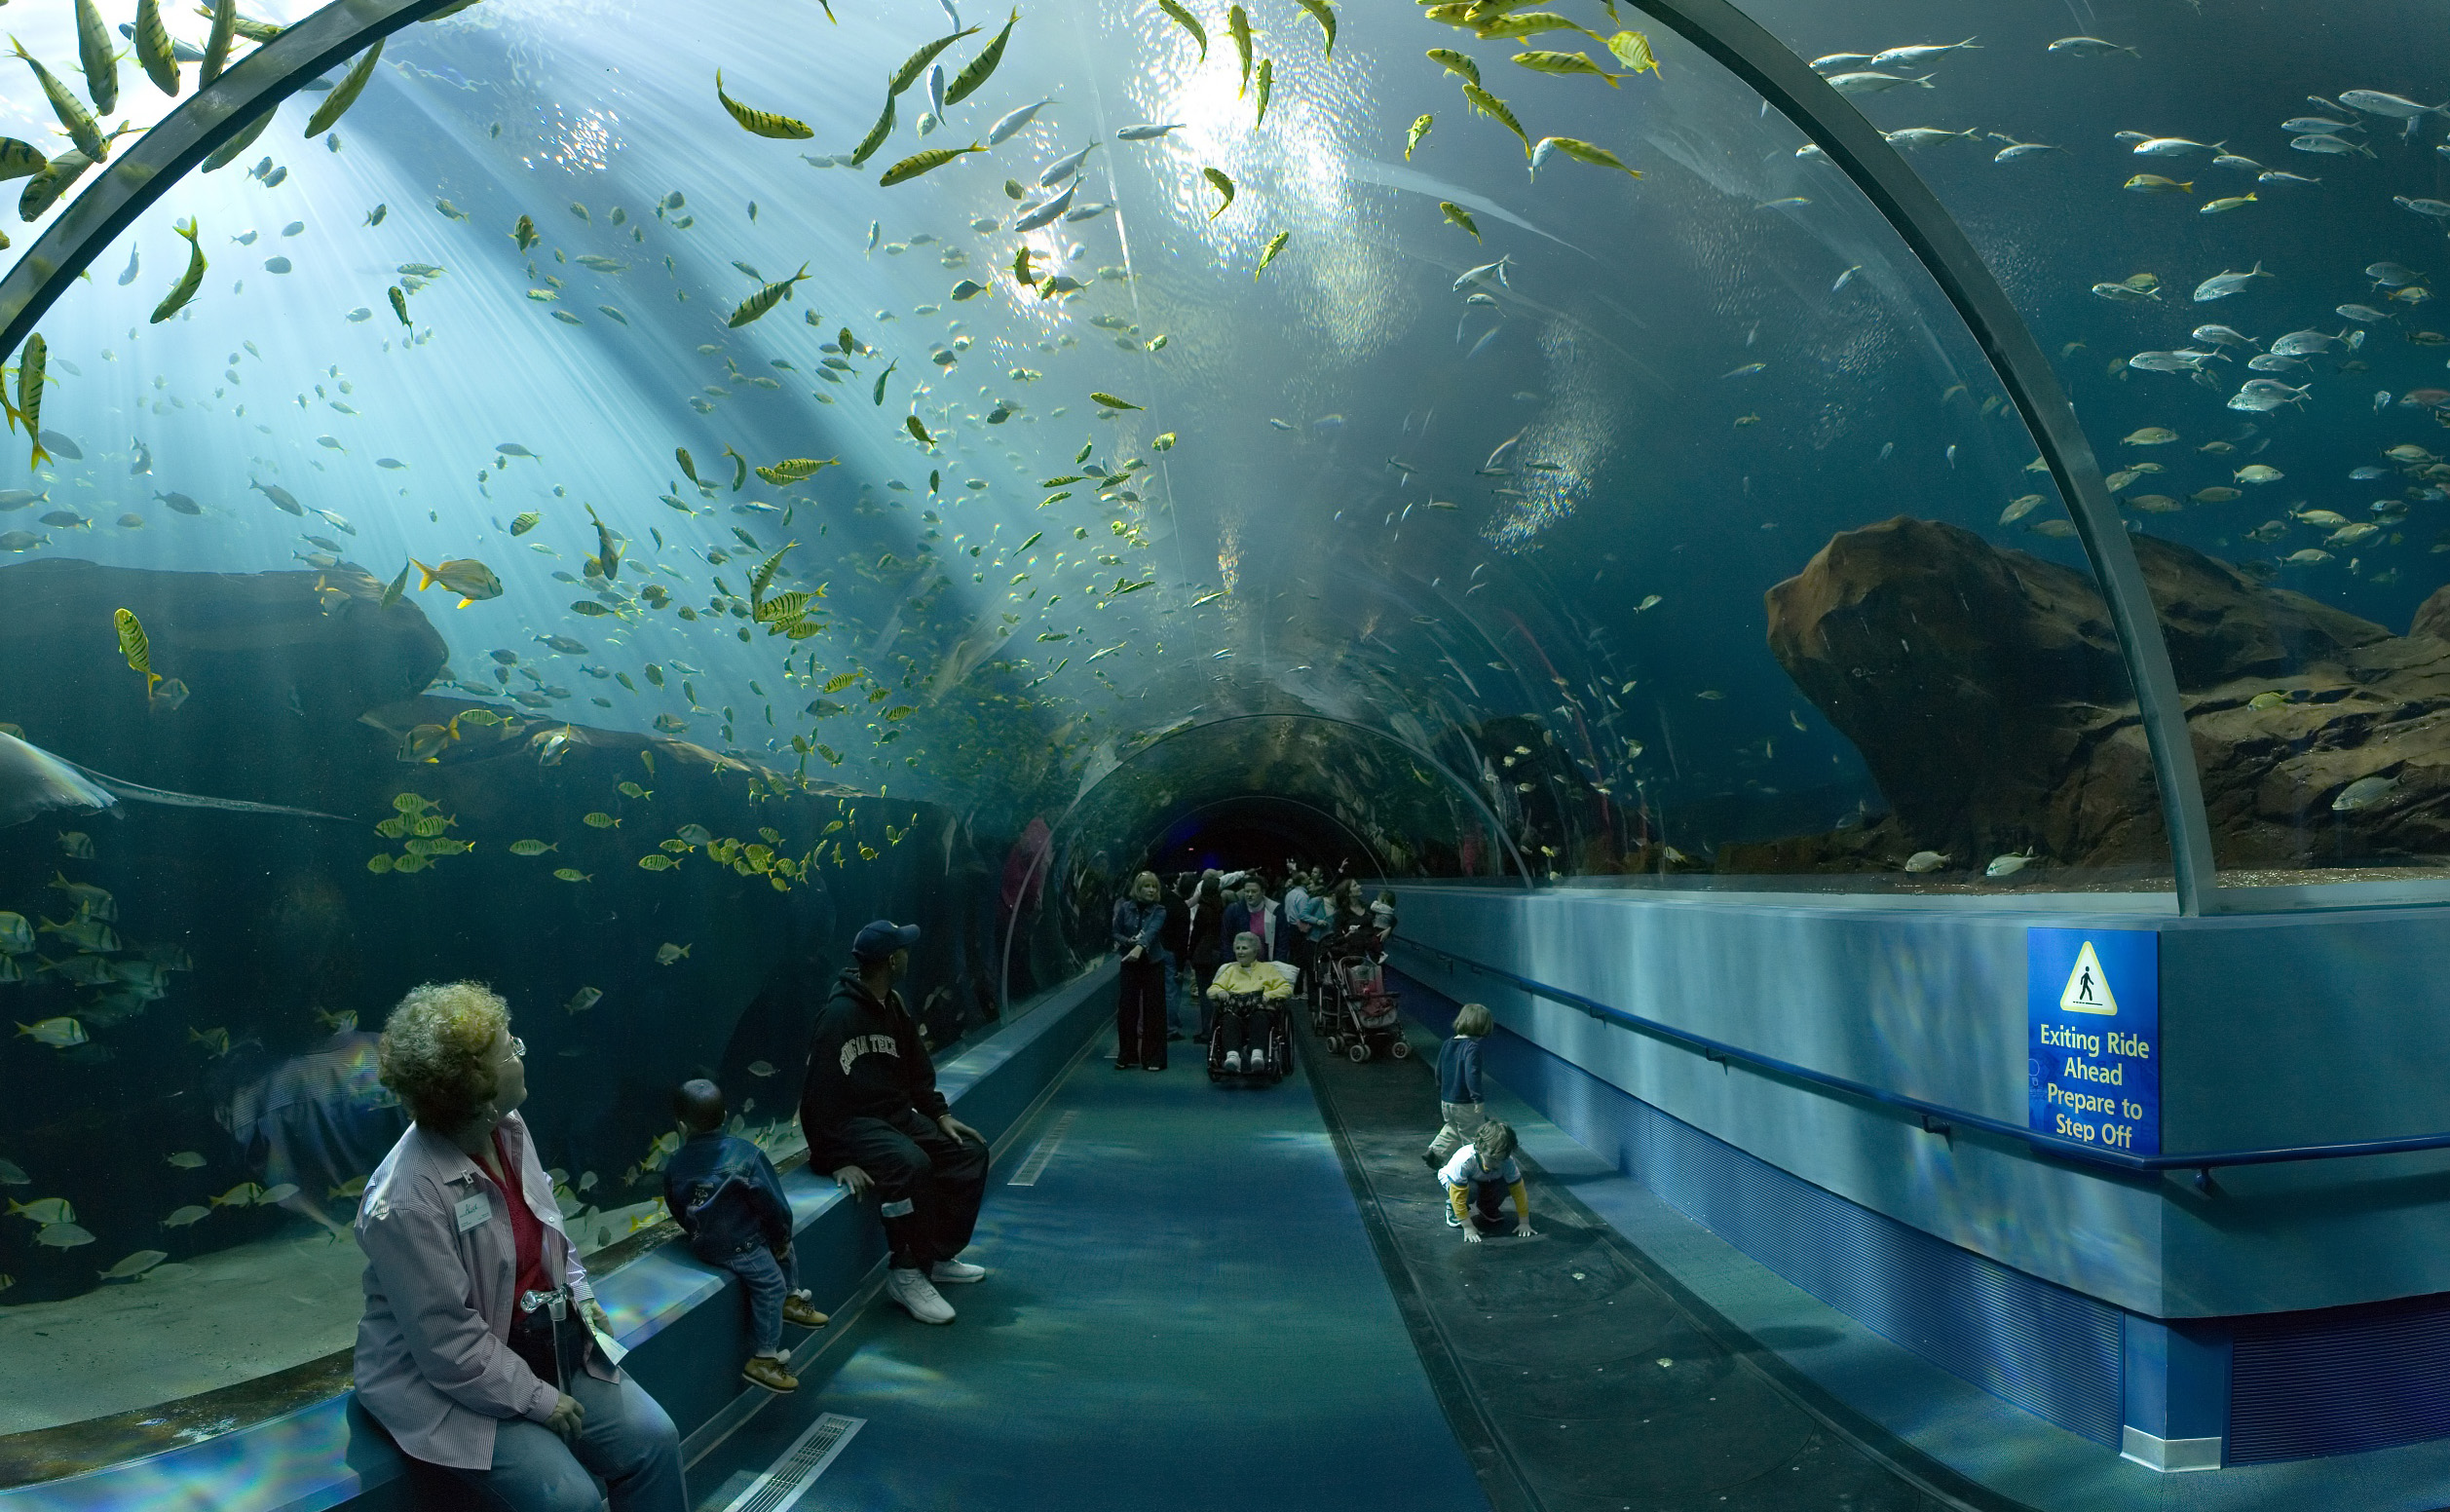 ... keeping aquarium wiki list of aquaria aquarium aquarium wallpaper